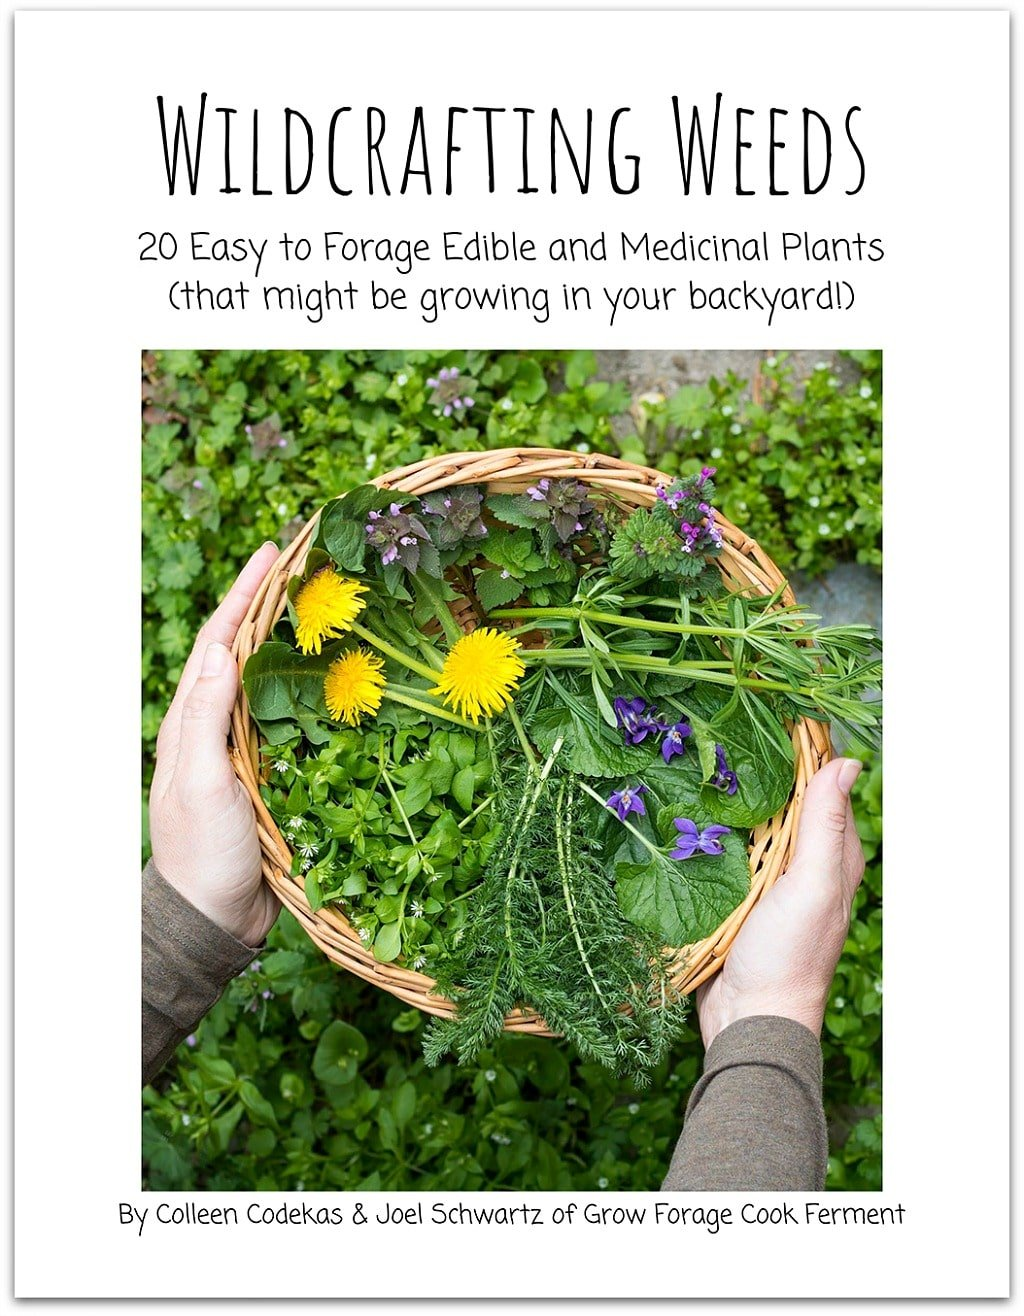 Wildcrafting Weeds eBook!